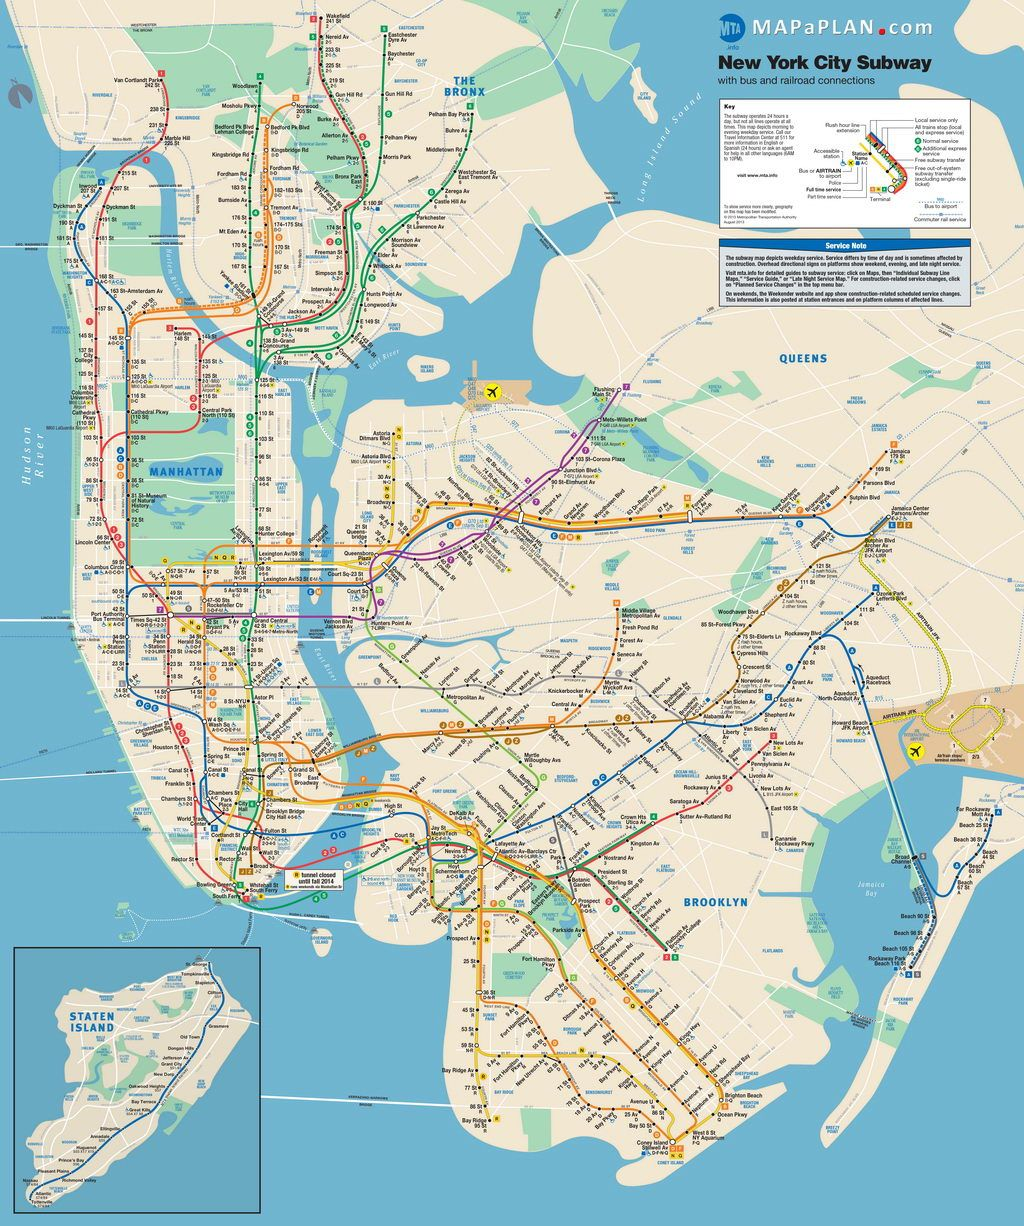 Nyc Subway Map Over Street Map.Lots Of Free Printable Maps Of Manhattan Great For Tourists If You